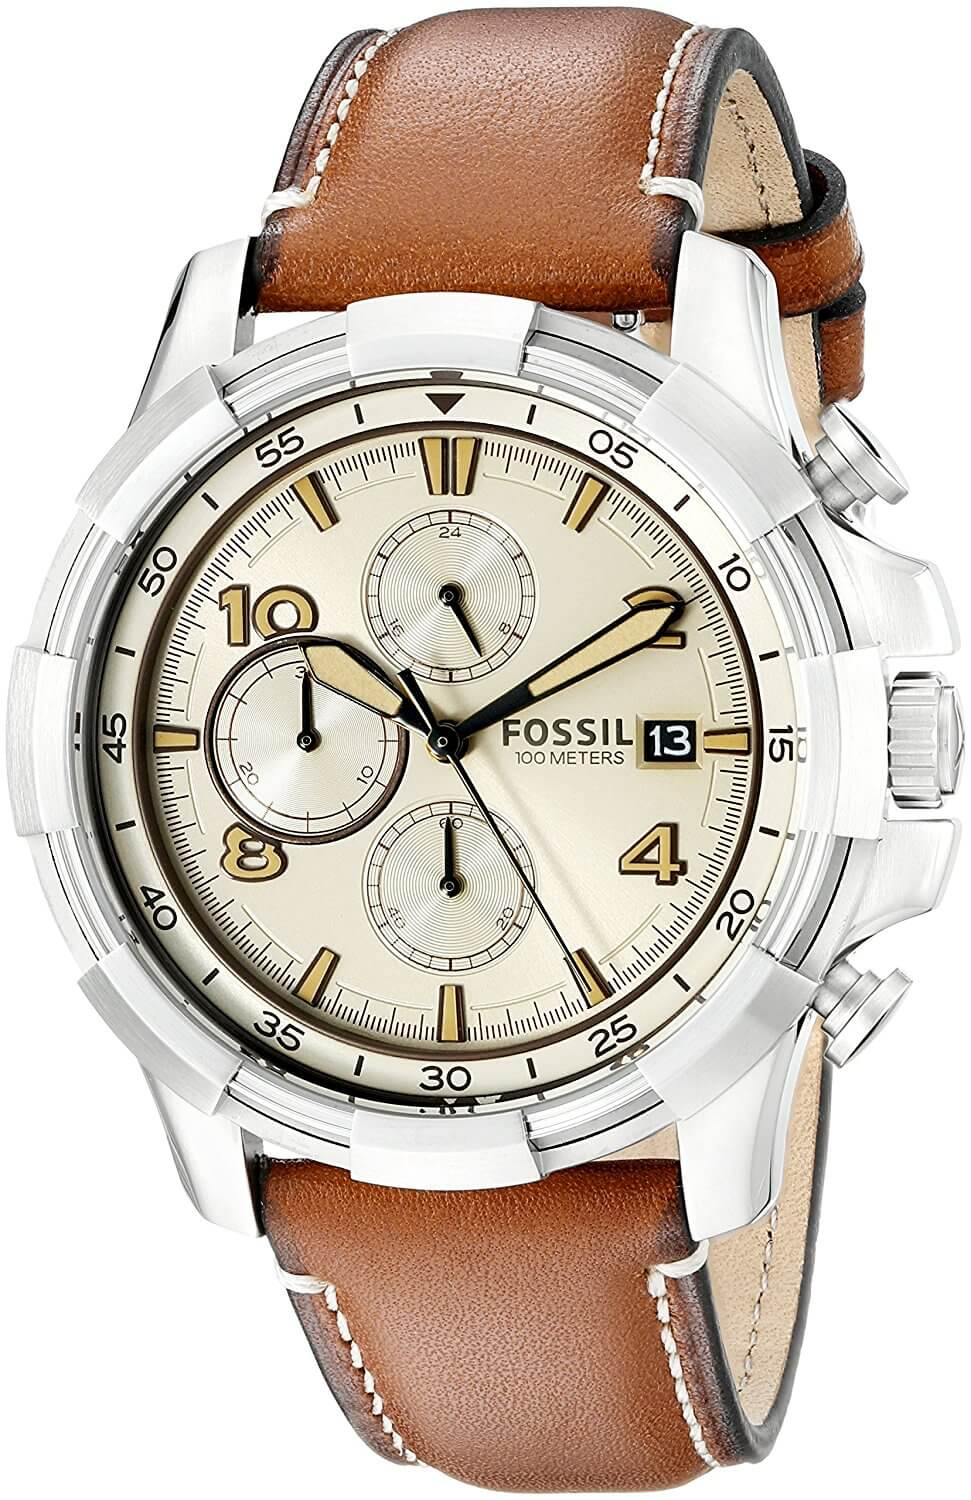 Fossil End-of-season Dean Analog Beige Dial Men's Watch – FS5130